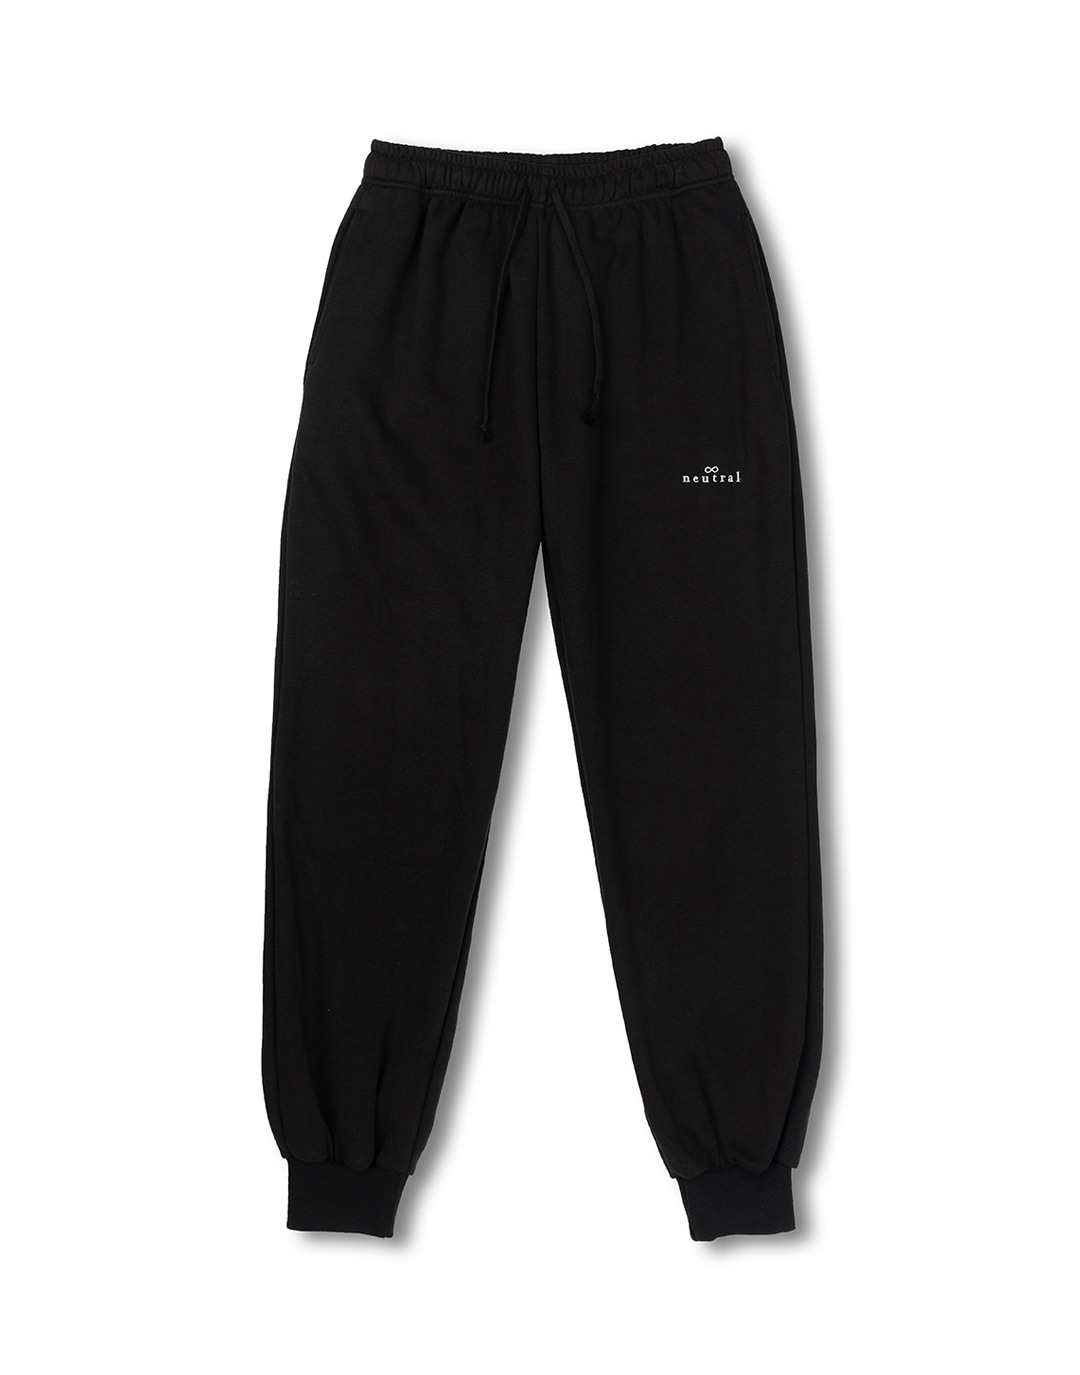 Black jogger sweatpants